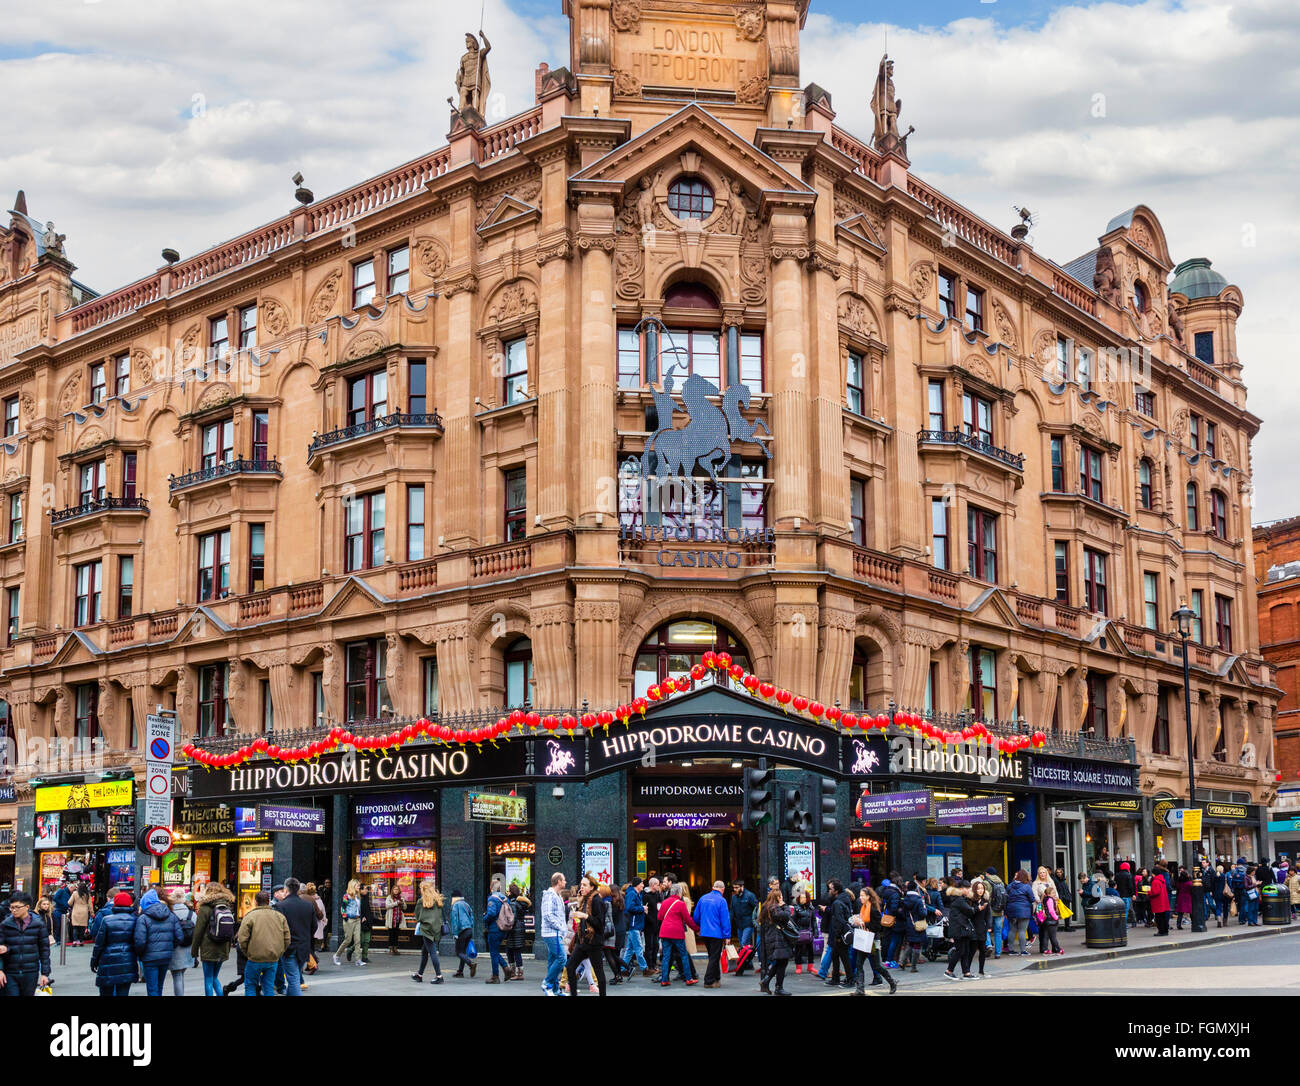 The Hippodrome Casino, Charing Cross Road, Leicester Square, London, England, UK - Stock Image